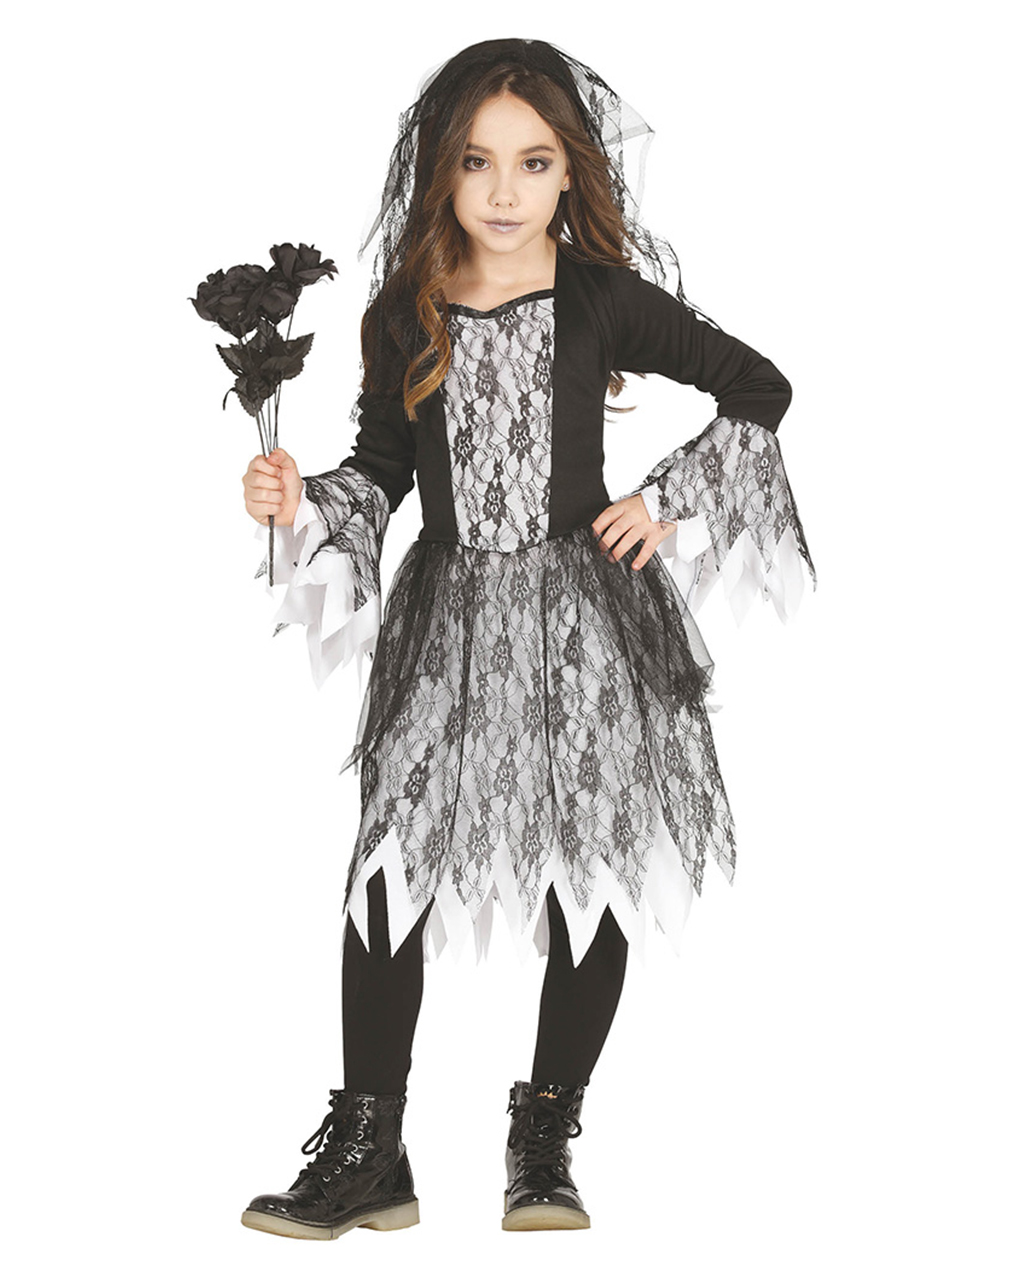 Gothic Ghost Girl Costume for Gothic & Halloween | horror-shop.com